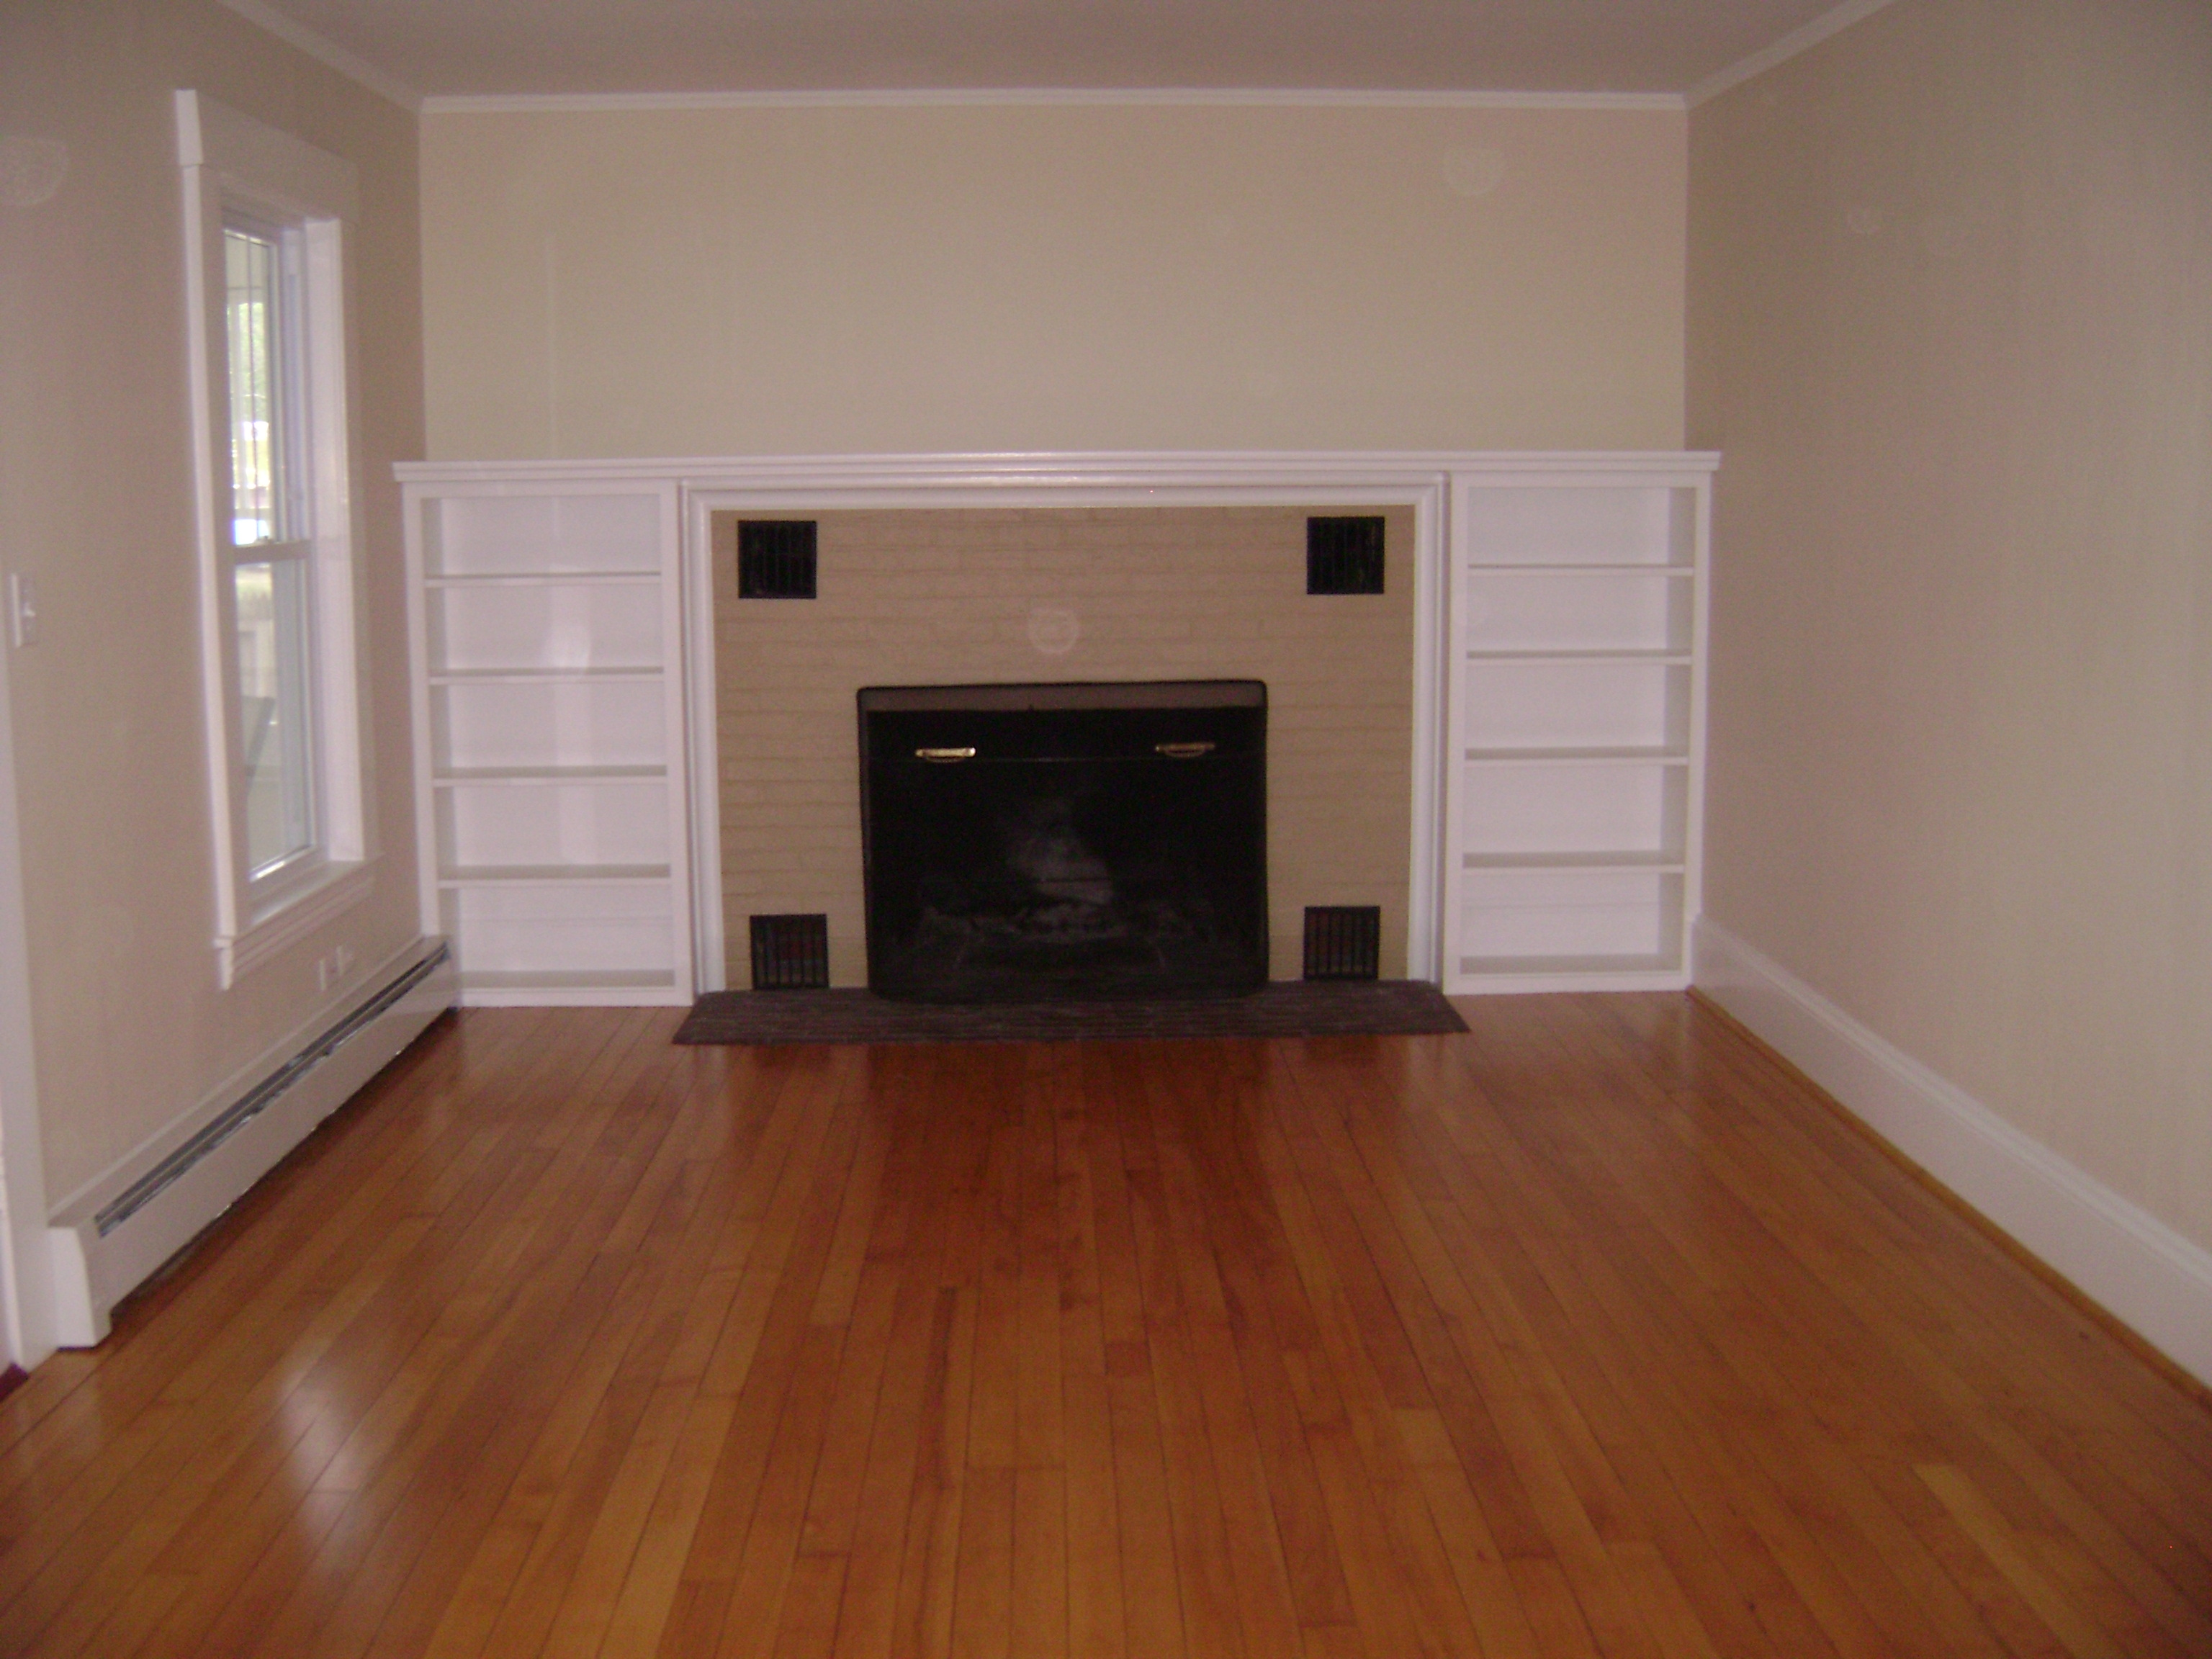 Paradigm Helps Market My Property Rehab A Home In Concord